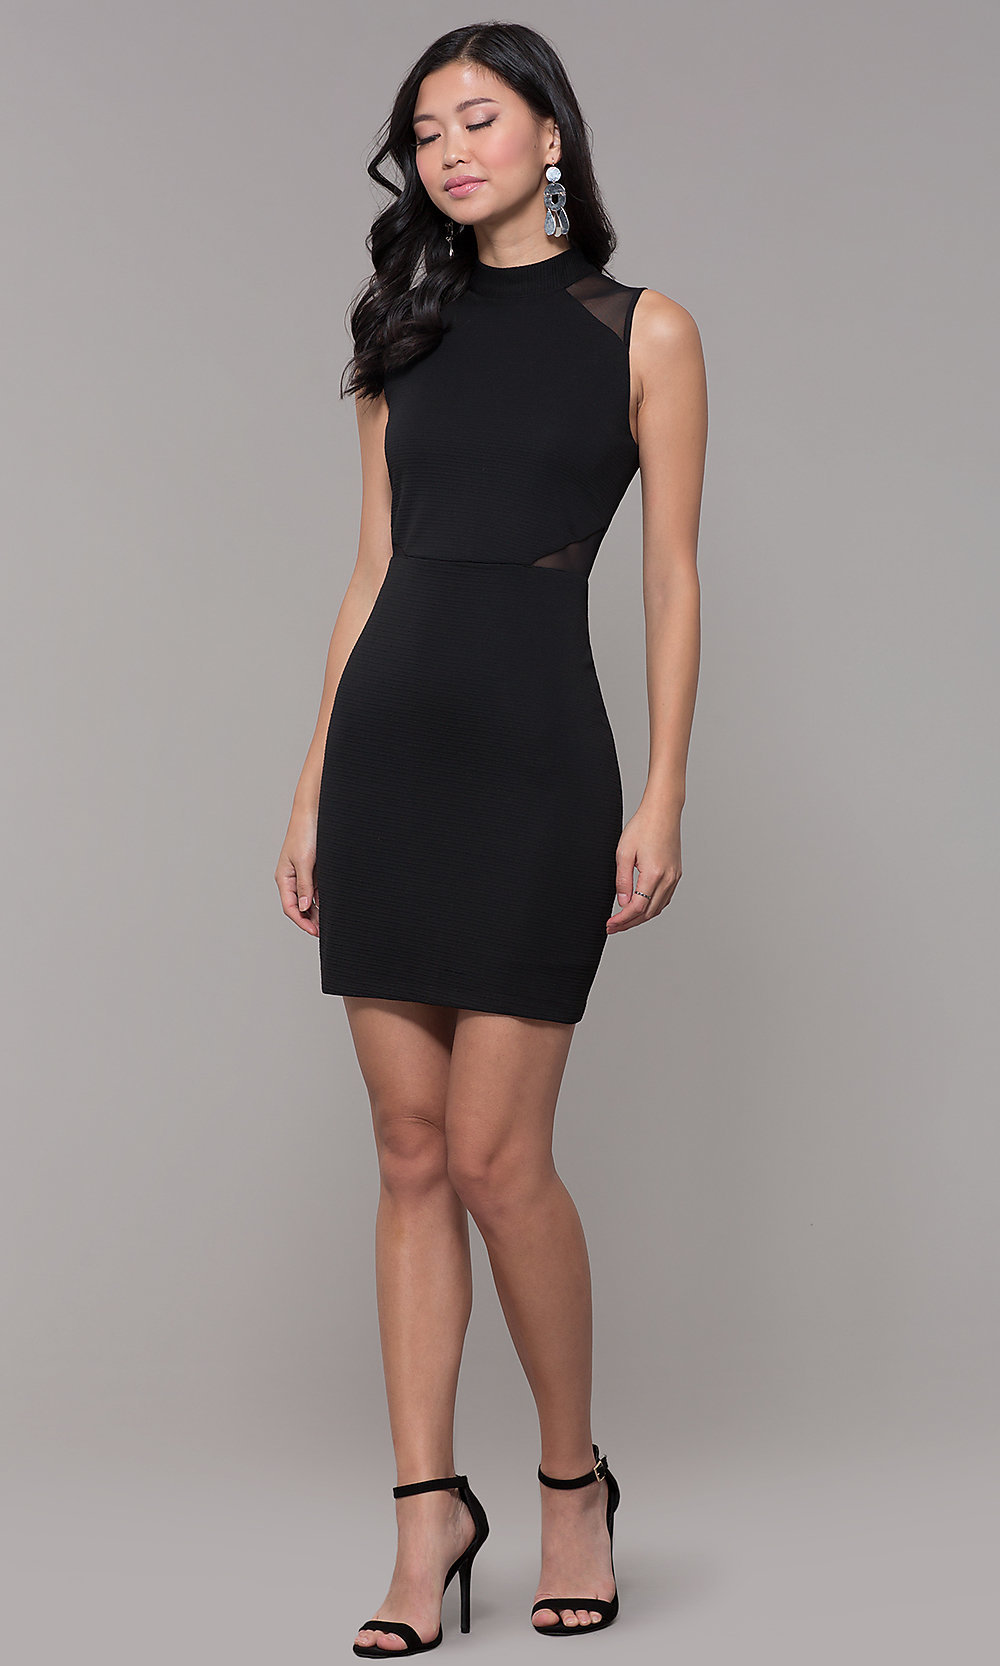 High-Neck Holiday Cocktail Little Black Party Dress